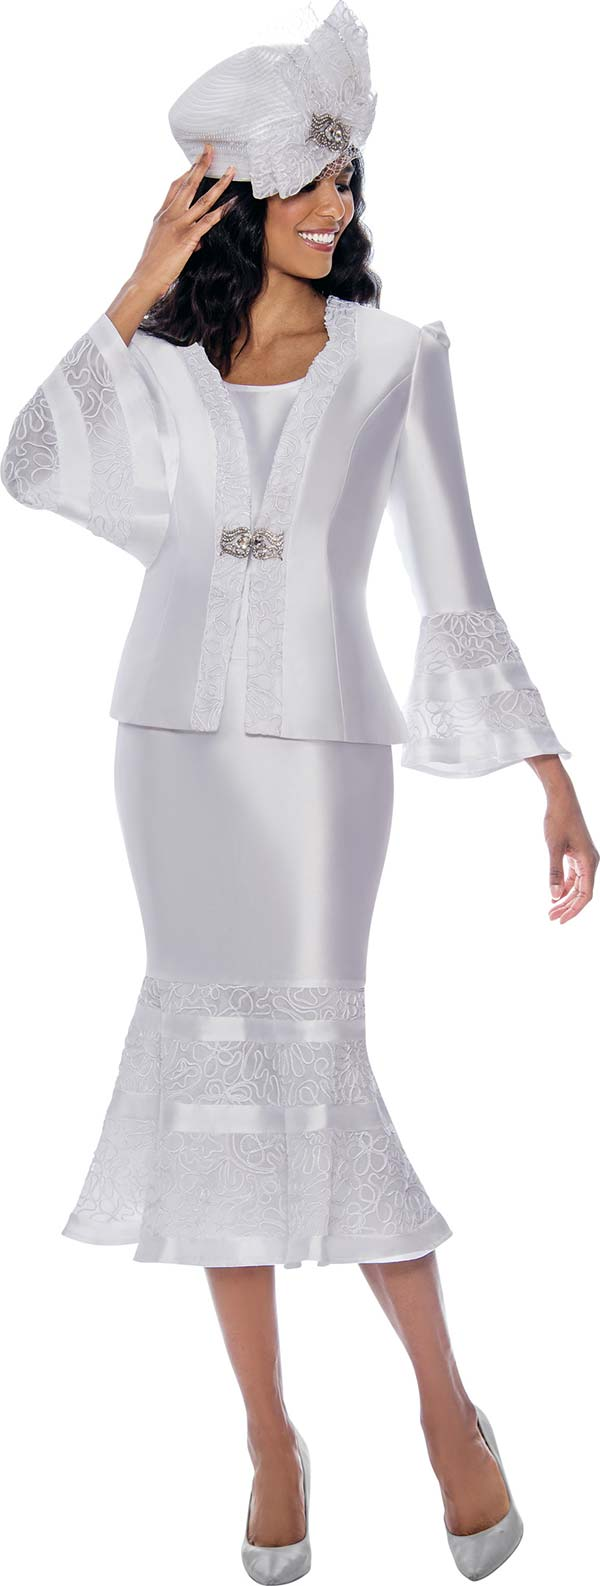 GMI G8103-White - Church Suit With Lace Trimmed Flounce Cuff Jacket And Skirt